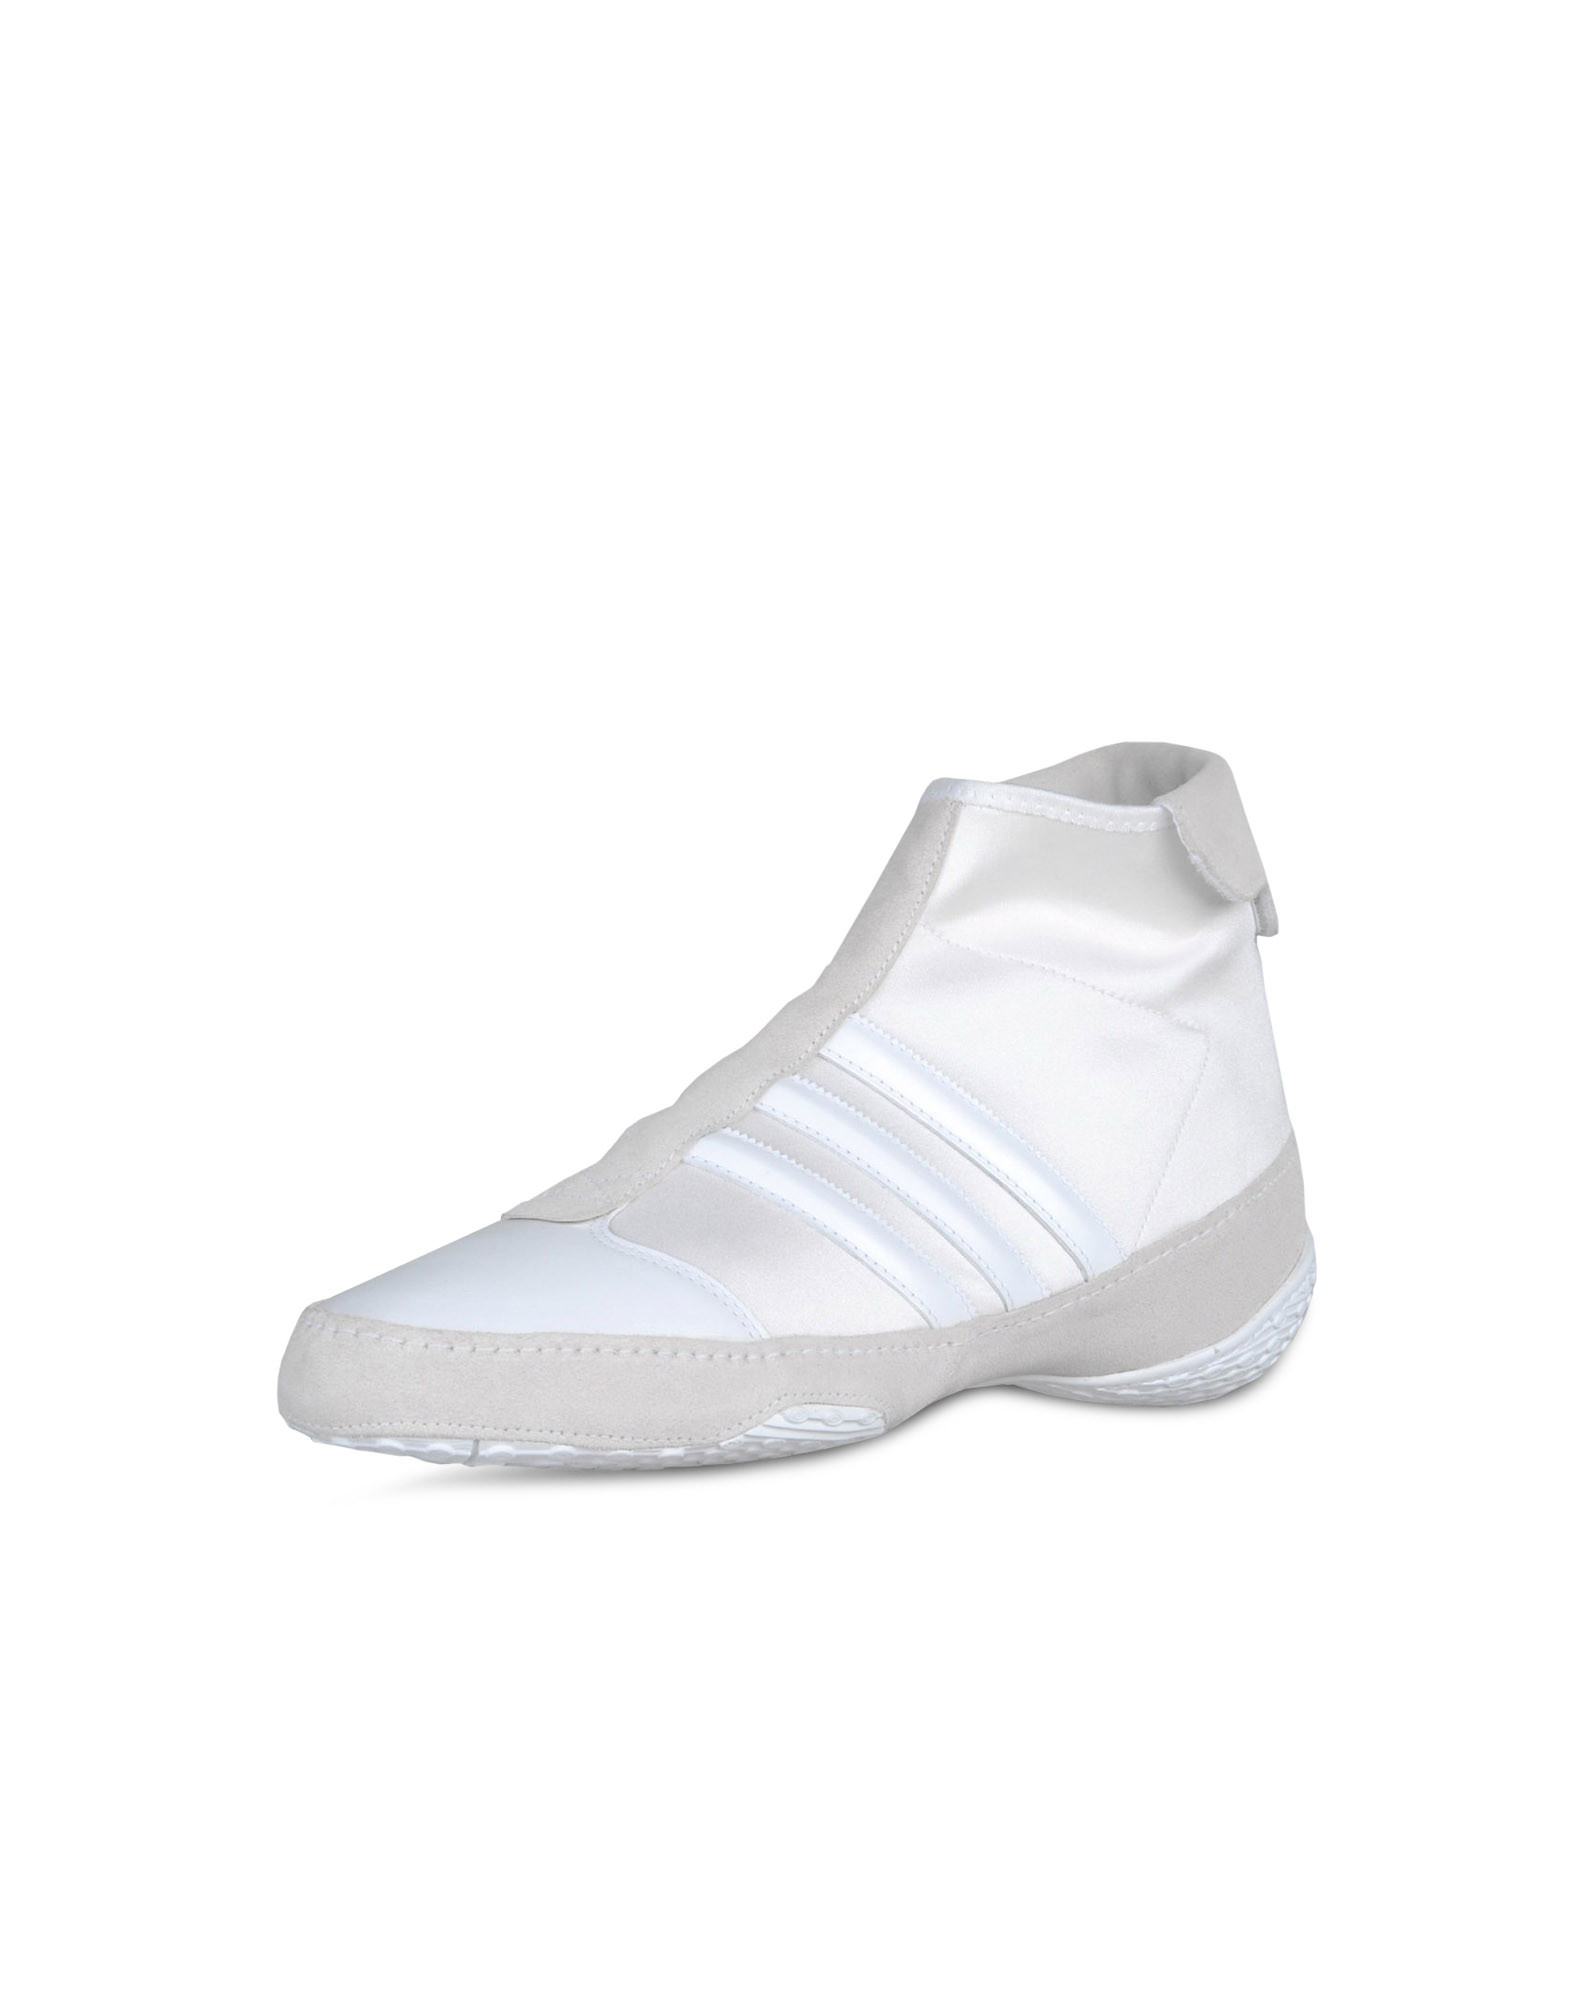 YY Campus Wrestling, High Top Sneakers for Men | Y-3.com